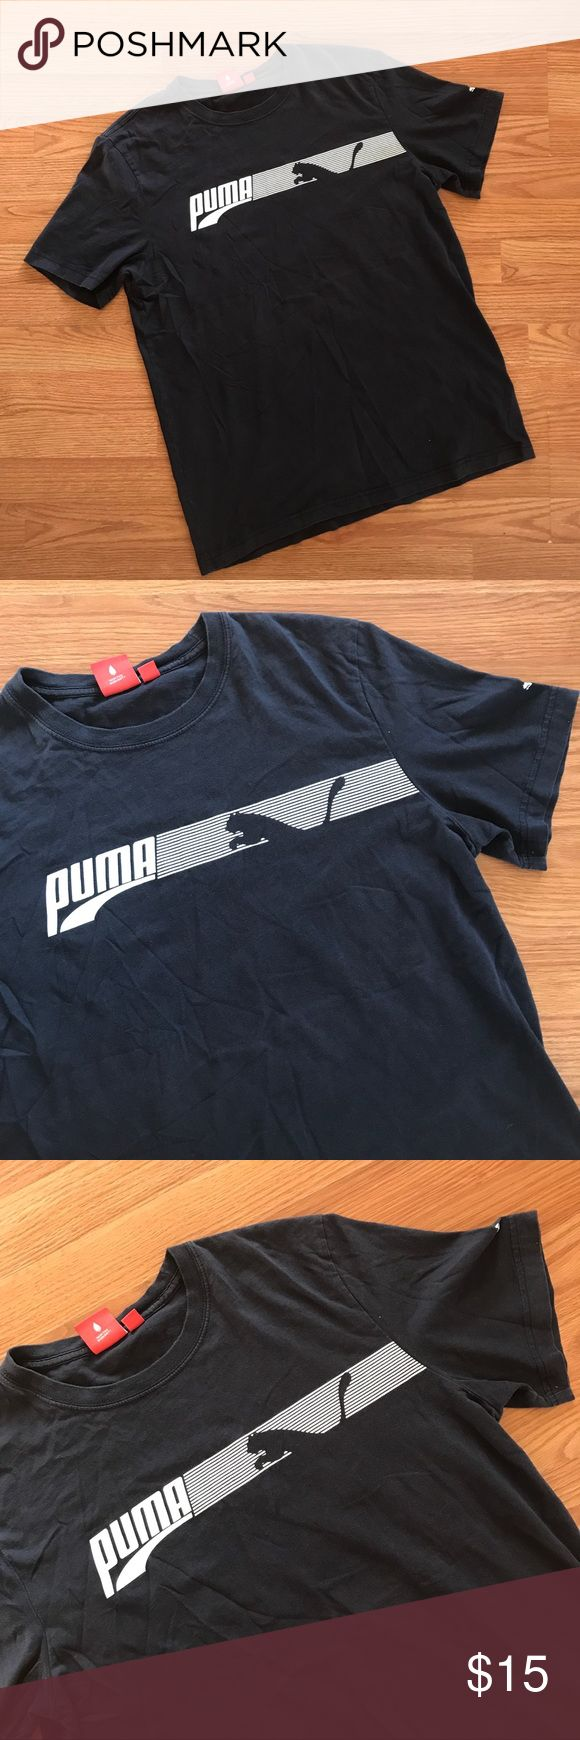 ▪️ VINTAGE▪️ Navy blue original PUMA t-shirt VINTAGE SOFT NAVY BLUE PUMA T SHIRT — SIZE MEDIUM  very soft & comfortable, this shirt is a tiny bit faded from normal wash &'wear. Well broken in l, well Worn, comfortable and relaxed. Perfect vintage :)   #vintage #vtg #original #puma #sneakers #navyblue #retro #clearance #sale #onsale #bogo #freeship Puma Shirts Tees - Short Sleeve